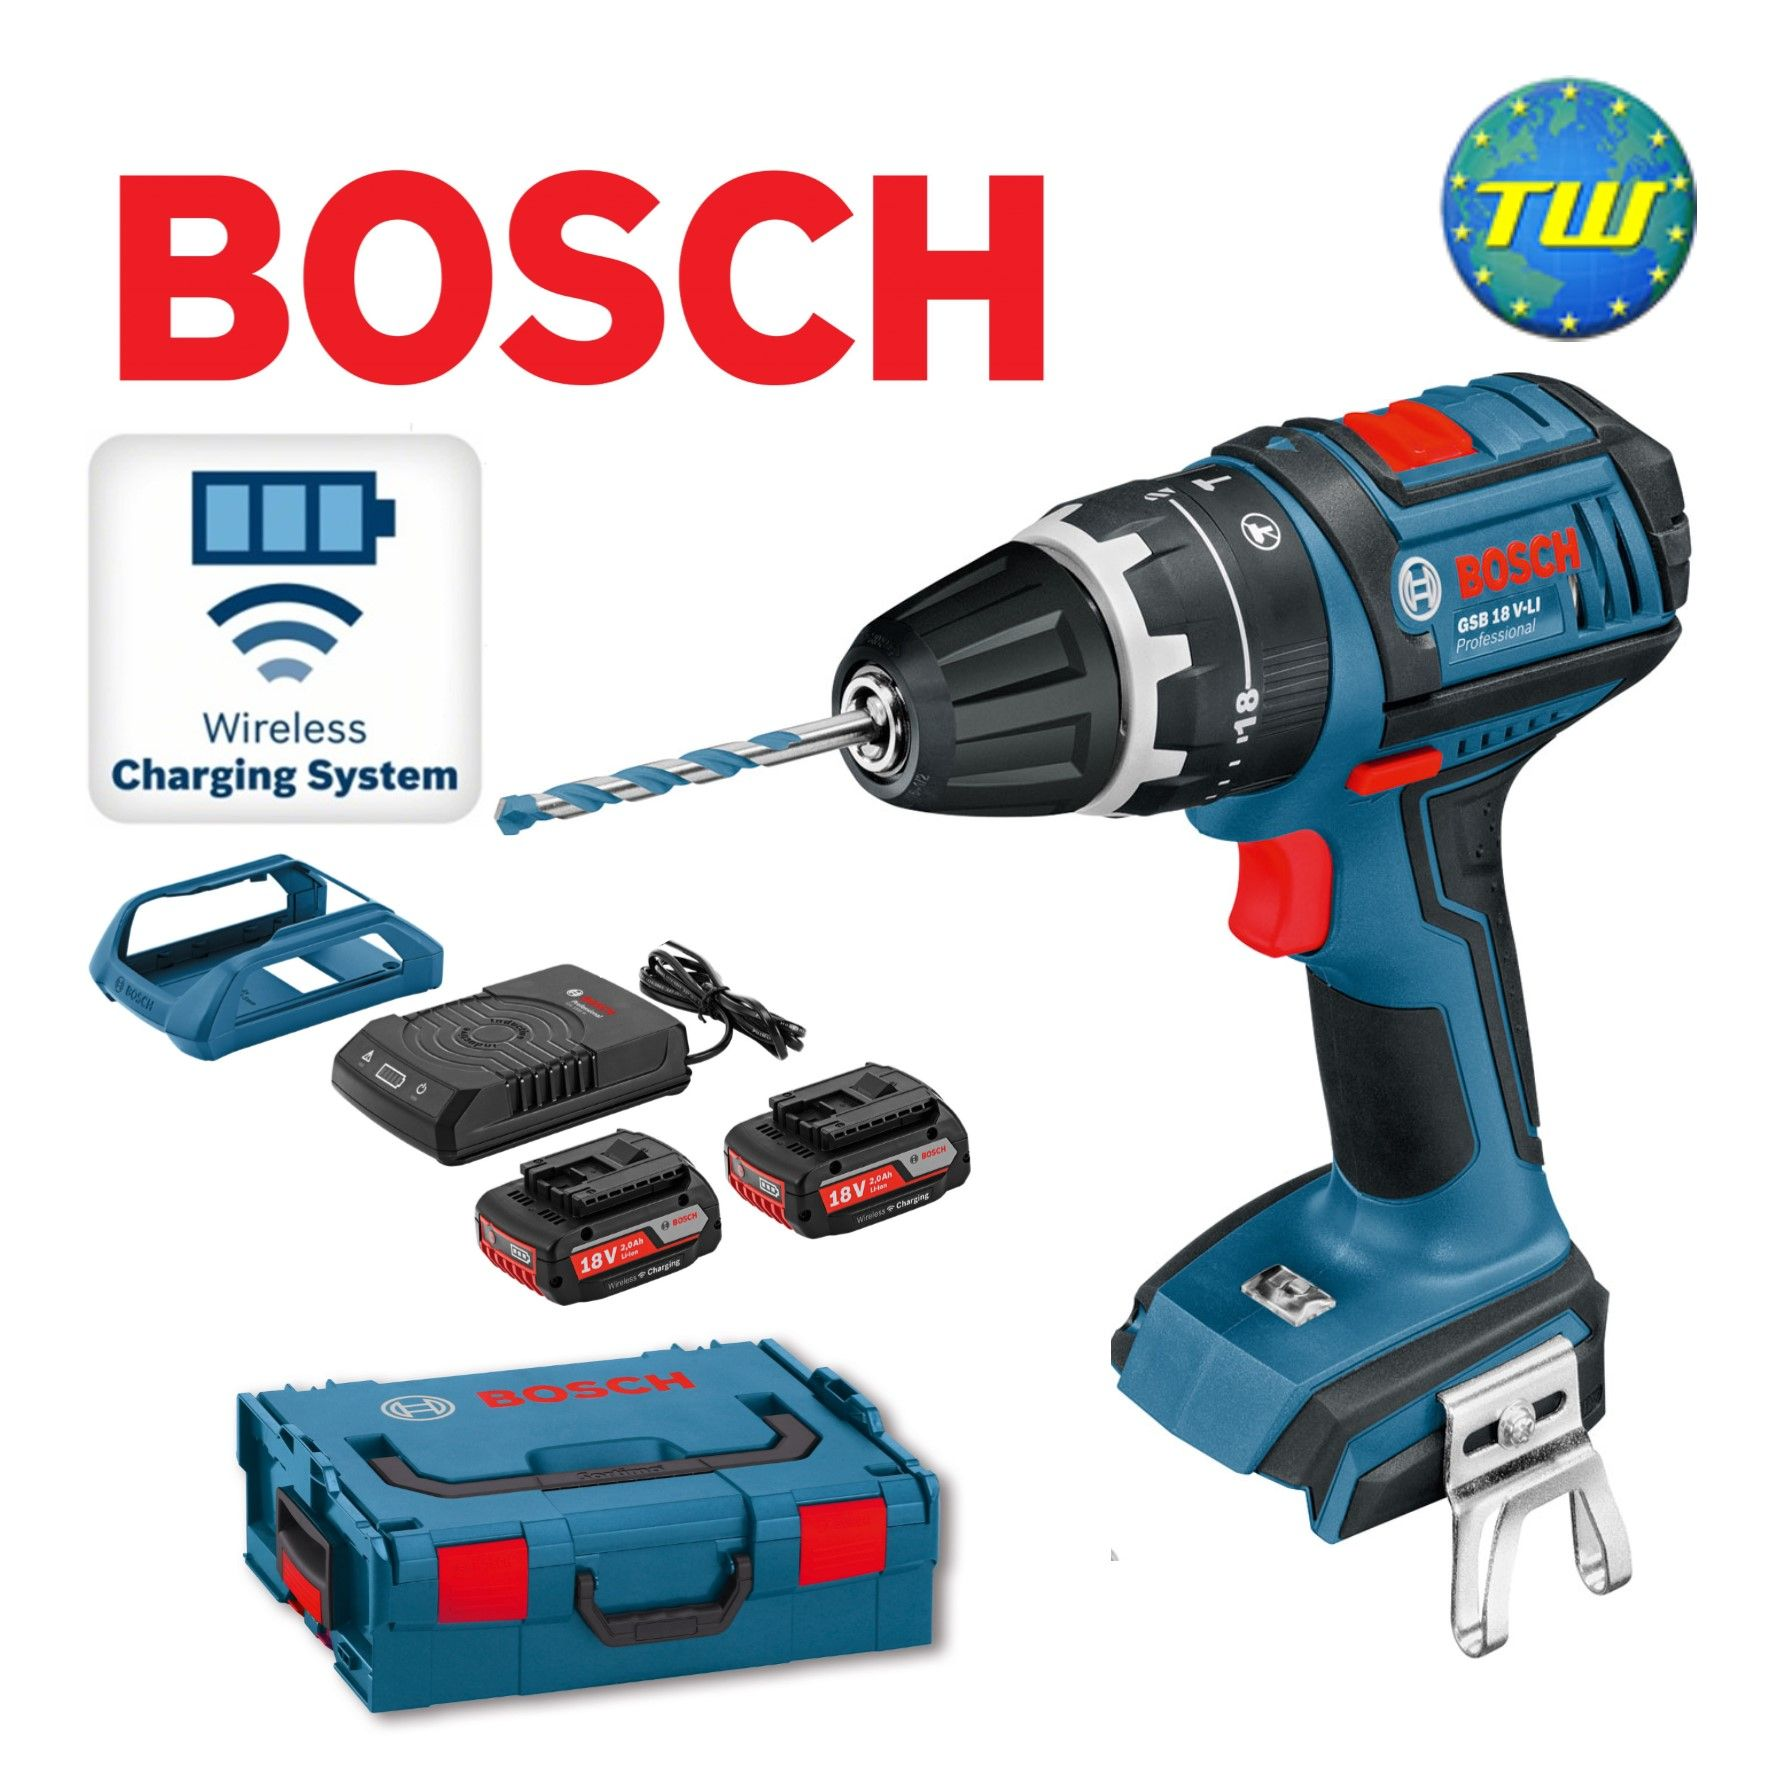 Http Www Twwholesale Co Uk Product Php Section 6083 Sn Bosch Wireless Gsb18v Li Bosch Wireless Gsb18v Li 18v Combi Drill Is Suppli Bosch Cordless Tools Drill